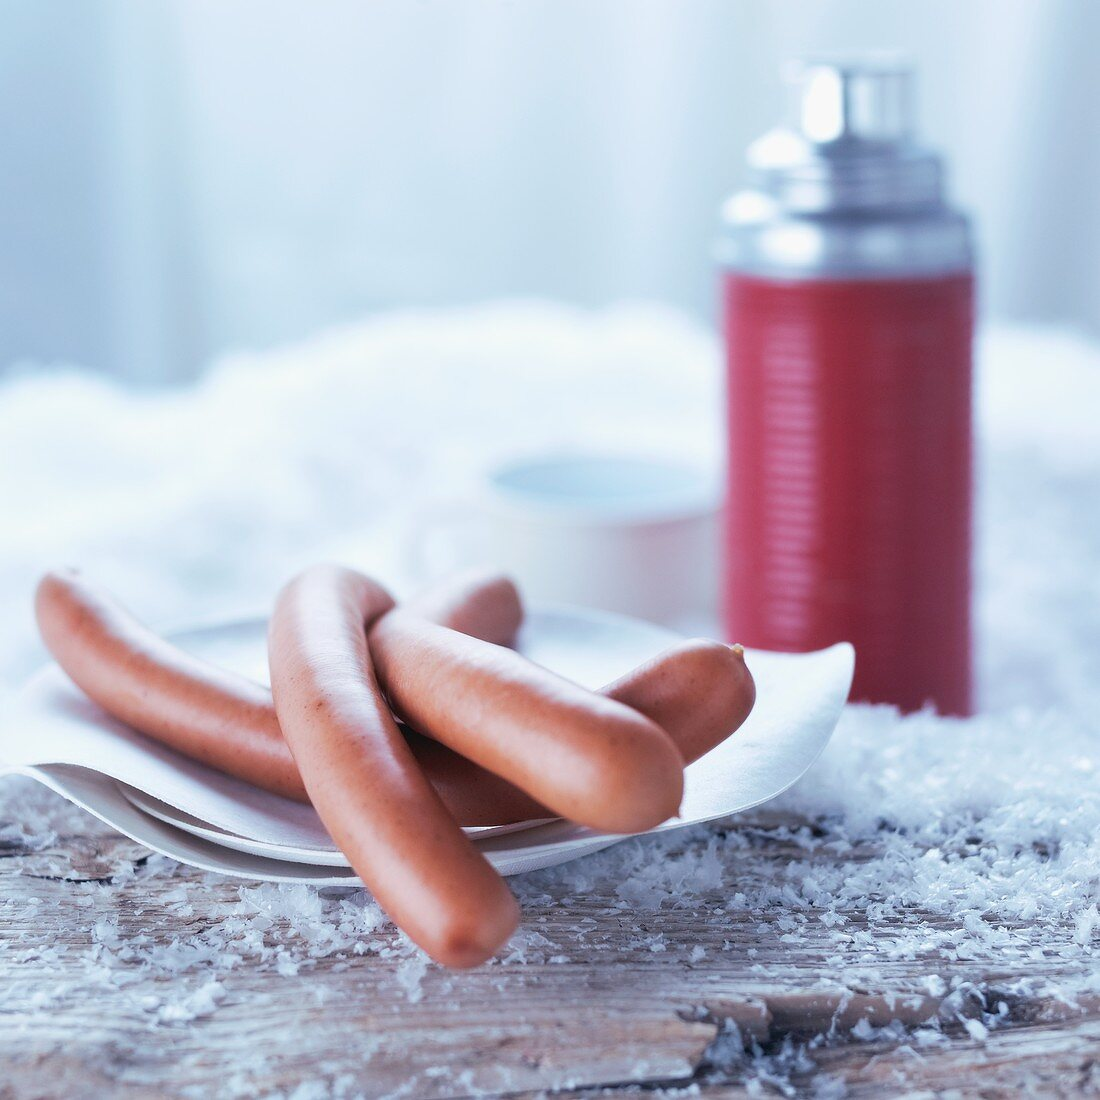 Frankfurters and a Thermos flask